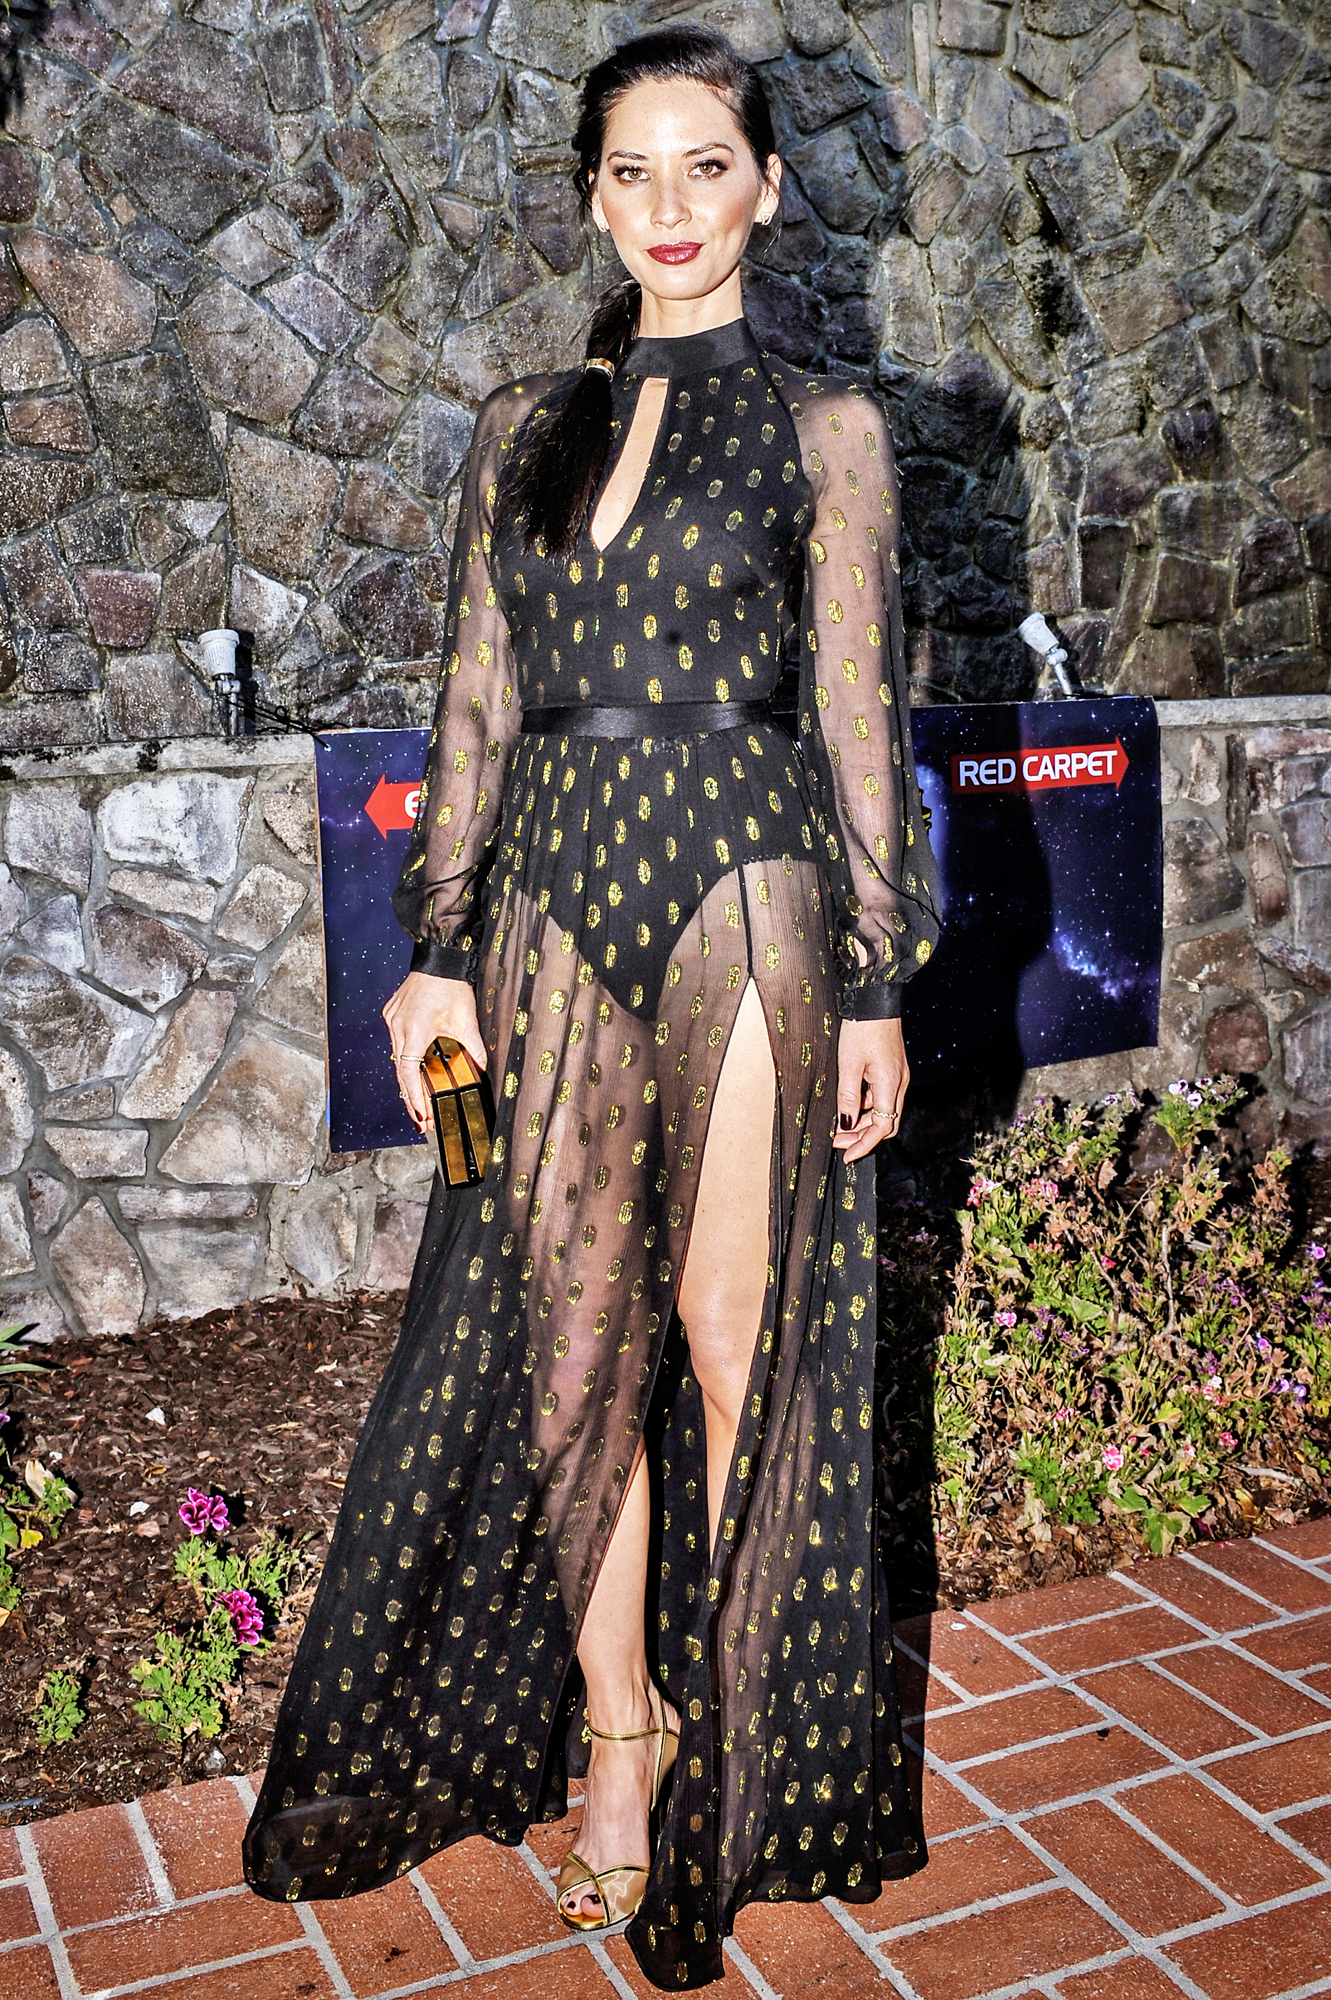 Olivia Munn's Leg-Bearing Dress Was Out of This World at the 2016 Saturn Awards